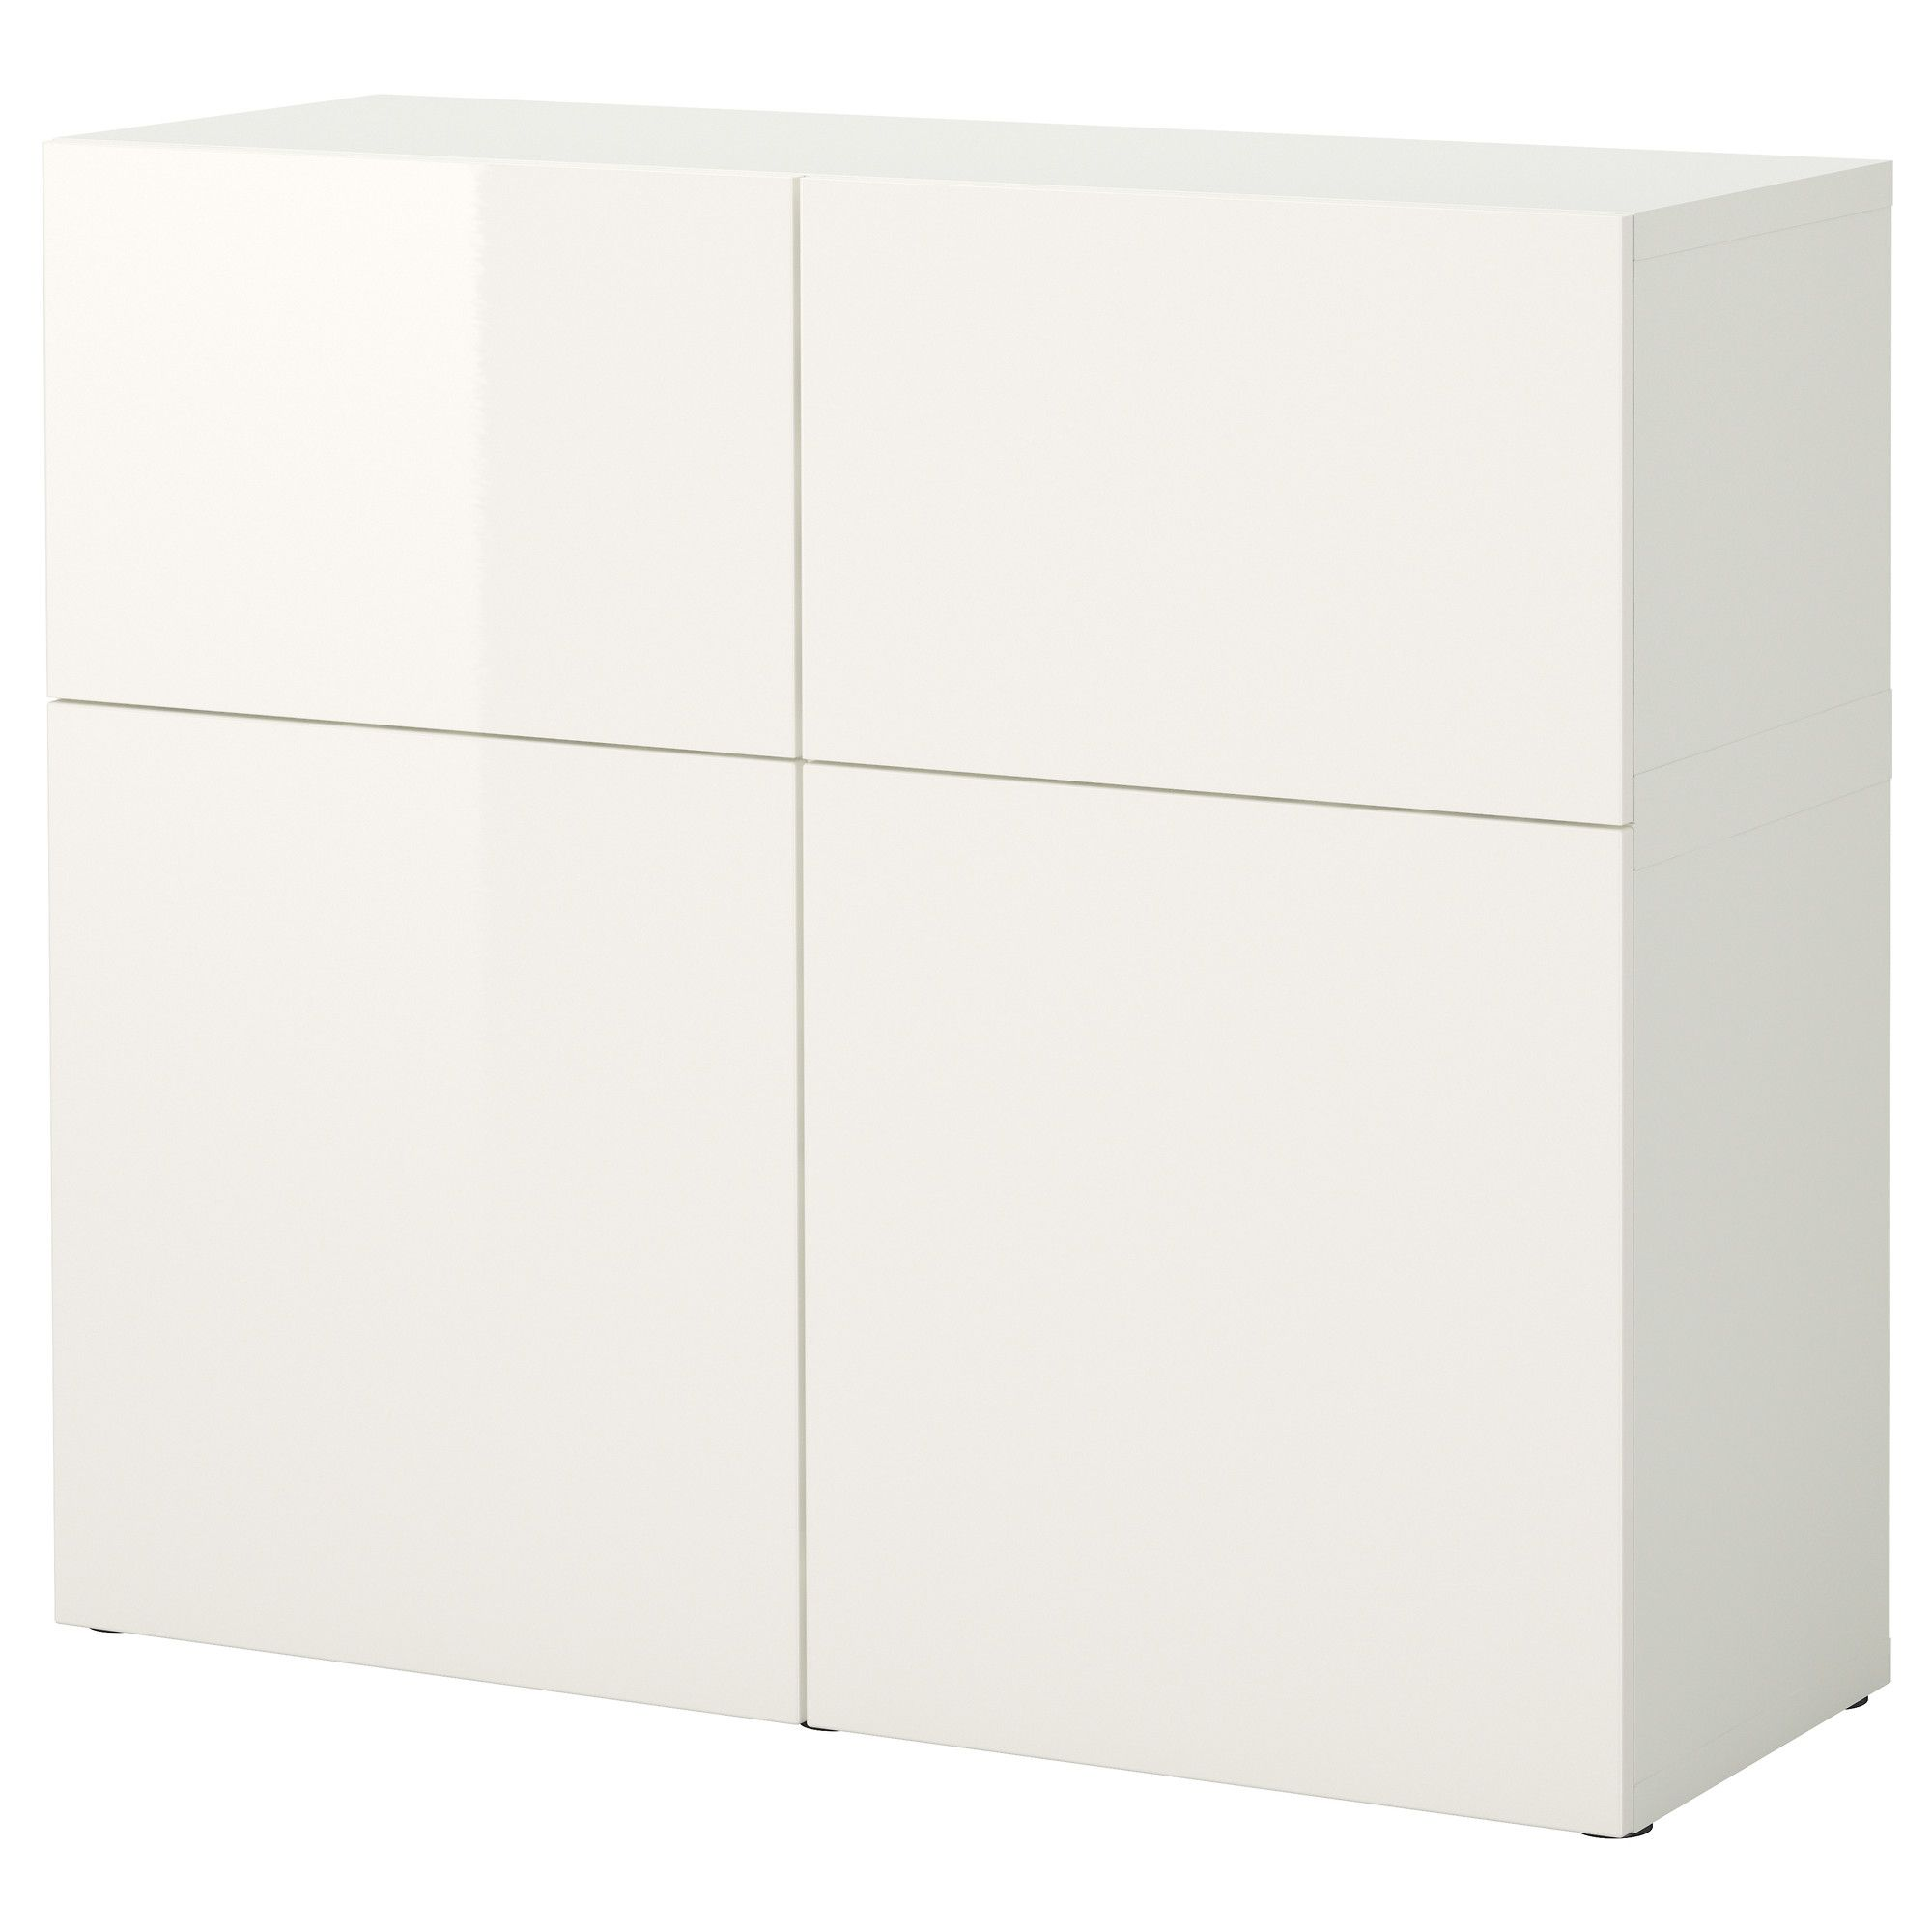 Best Storage Combination With Doors  Whitetofta High Glosswhite  Ikea